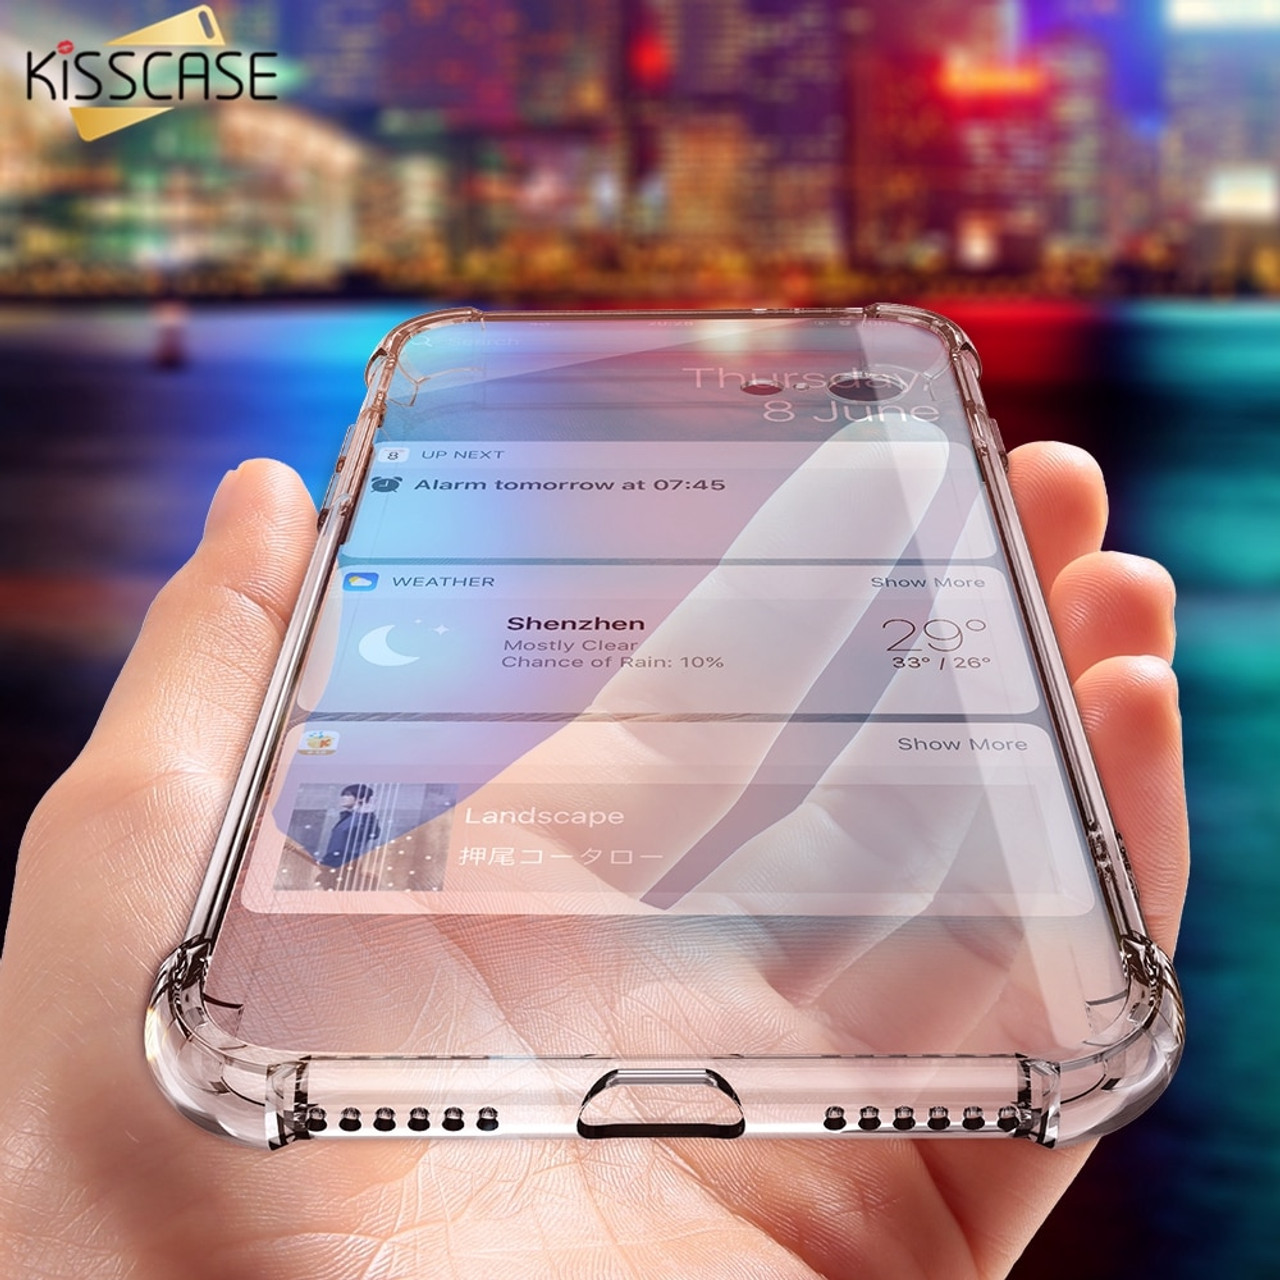 outlet store 8fdc6 b858e KISSCASE Case For iPhone X 6 7 Plus Phone Case For iPhone 8 7 9 XS Plus 5S  5 SE Clear Shockproof Soft Silicone Transparent Case